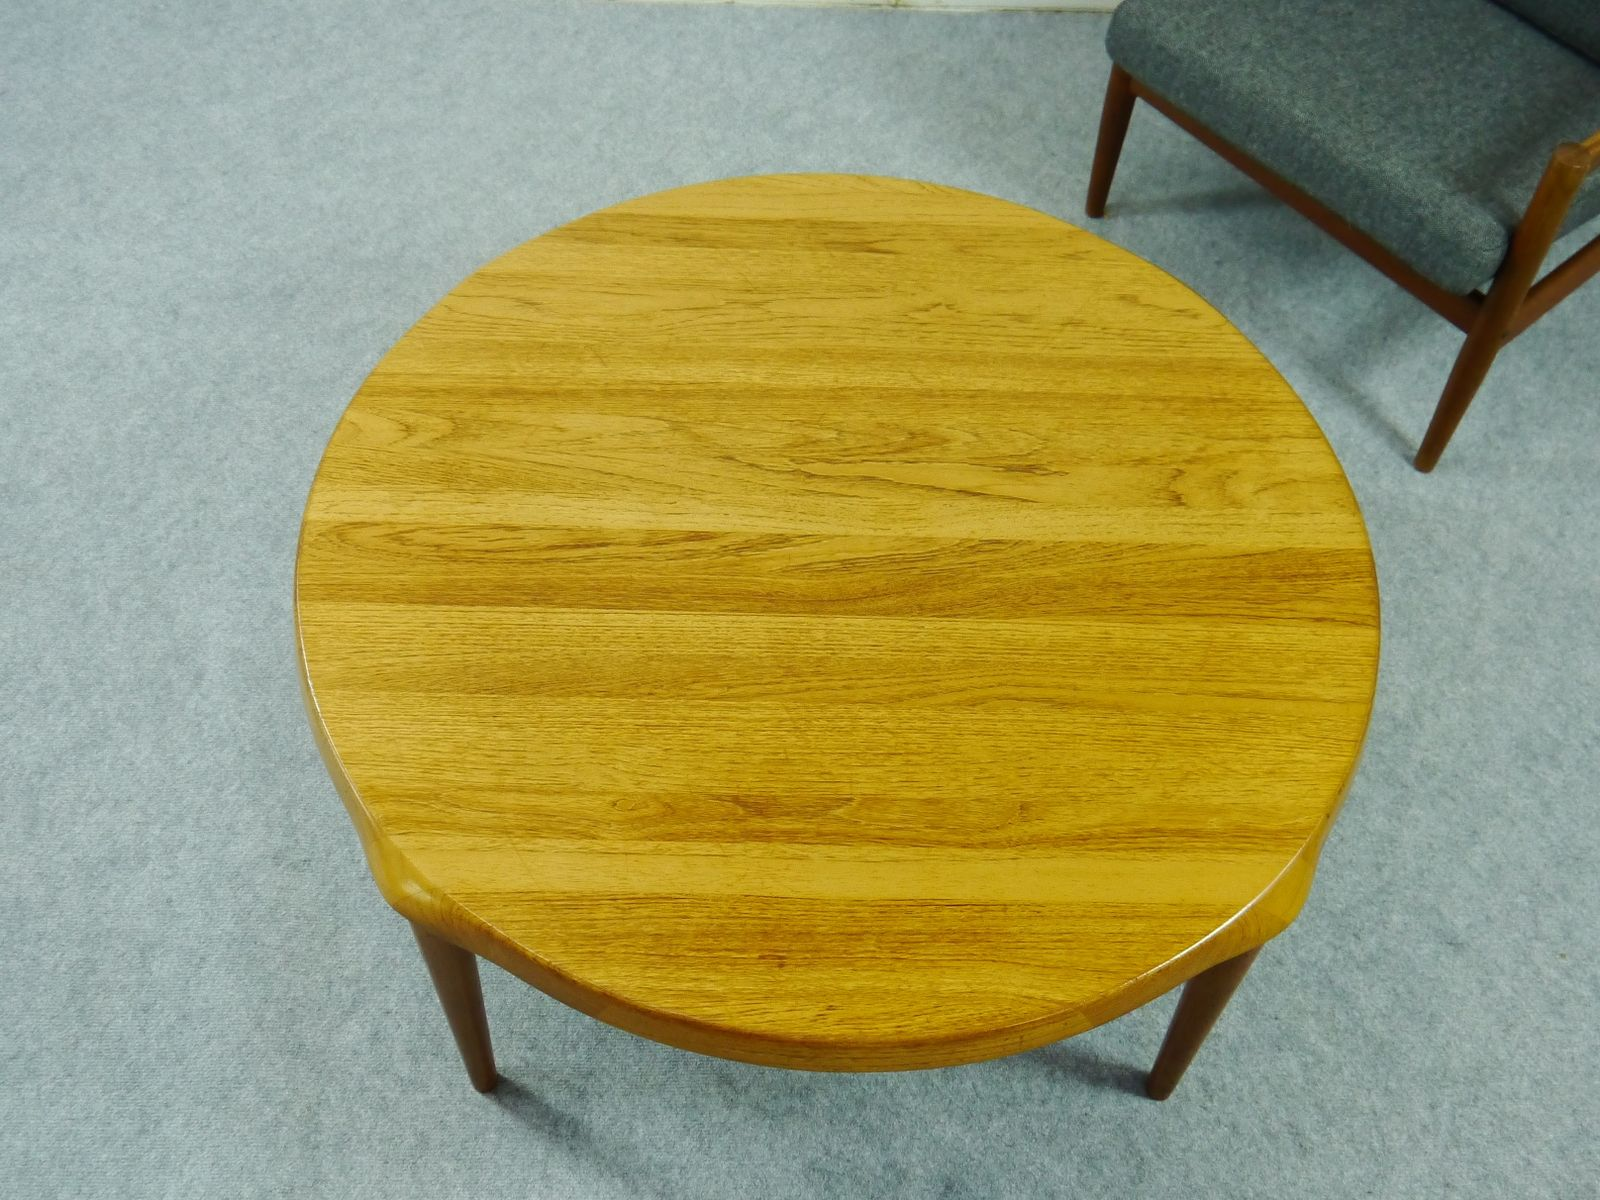 Danish Midcentury Teak Coffee Table by John Bone for Mikael